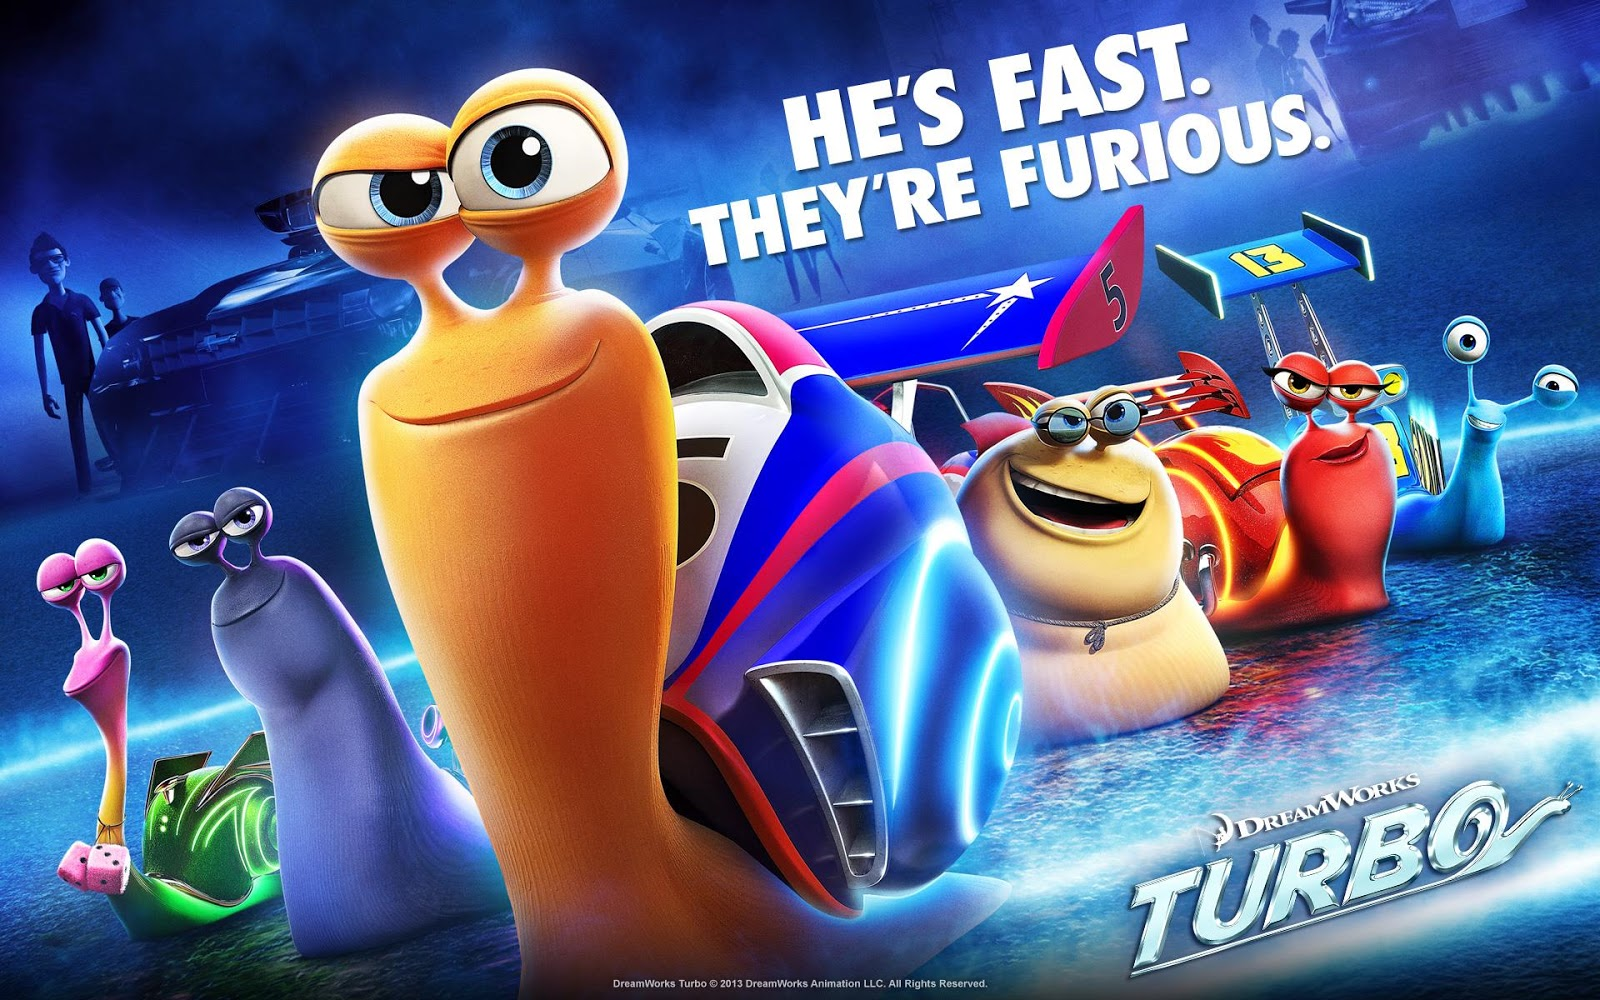 download & watch turbo movie 2013 hd: download turbo movie (2013) hd